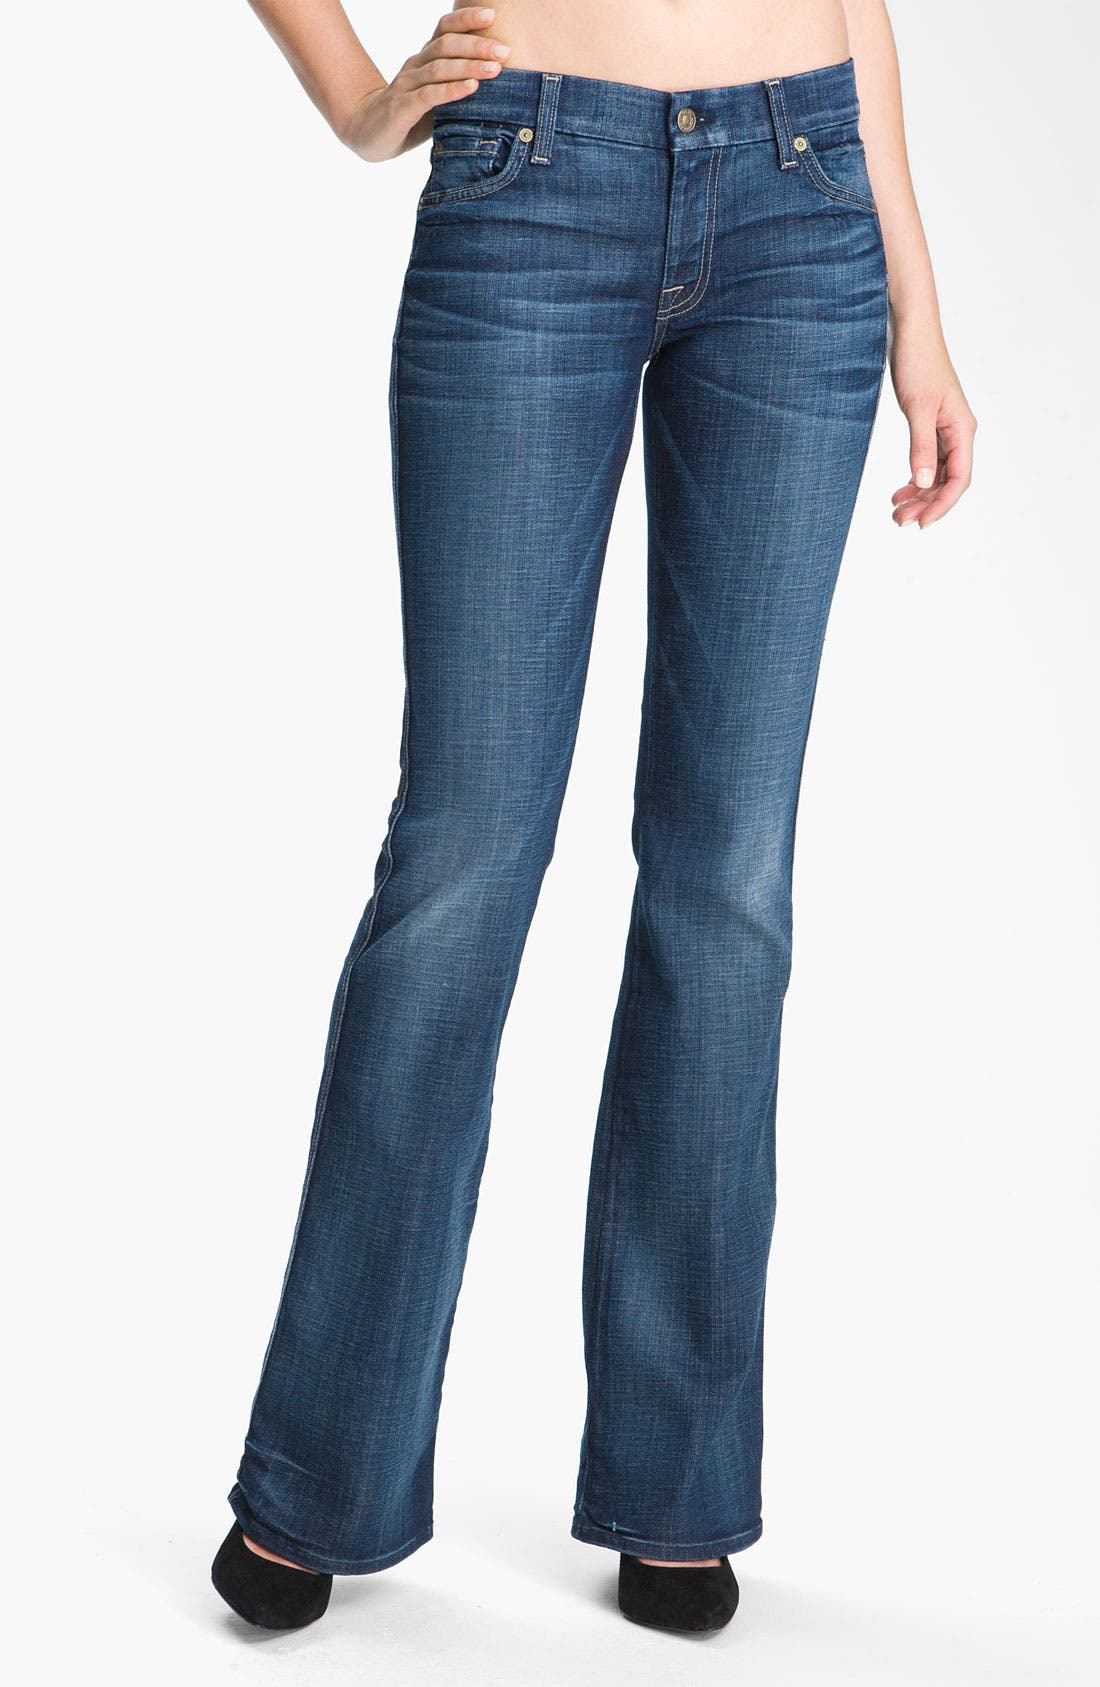 Alternate Image 1 Selected - 7 For All Mankind® 'A-Pocket' Bootcut Stretch Jeans (Royal Mountain Valley)